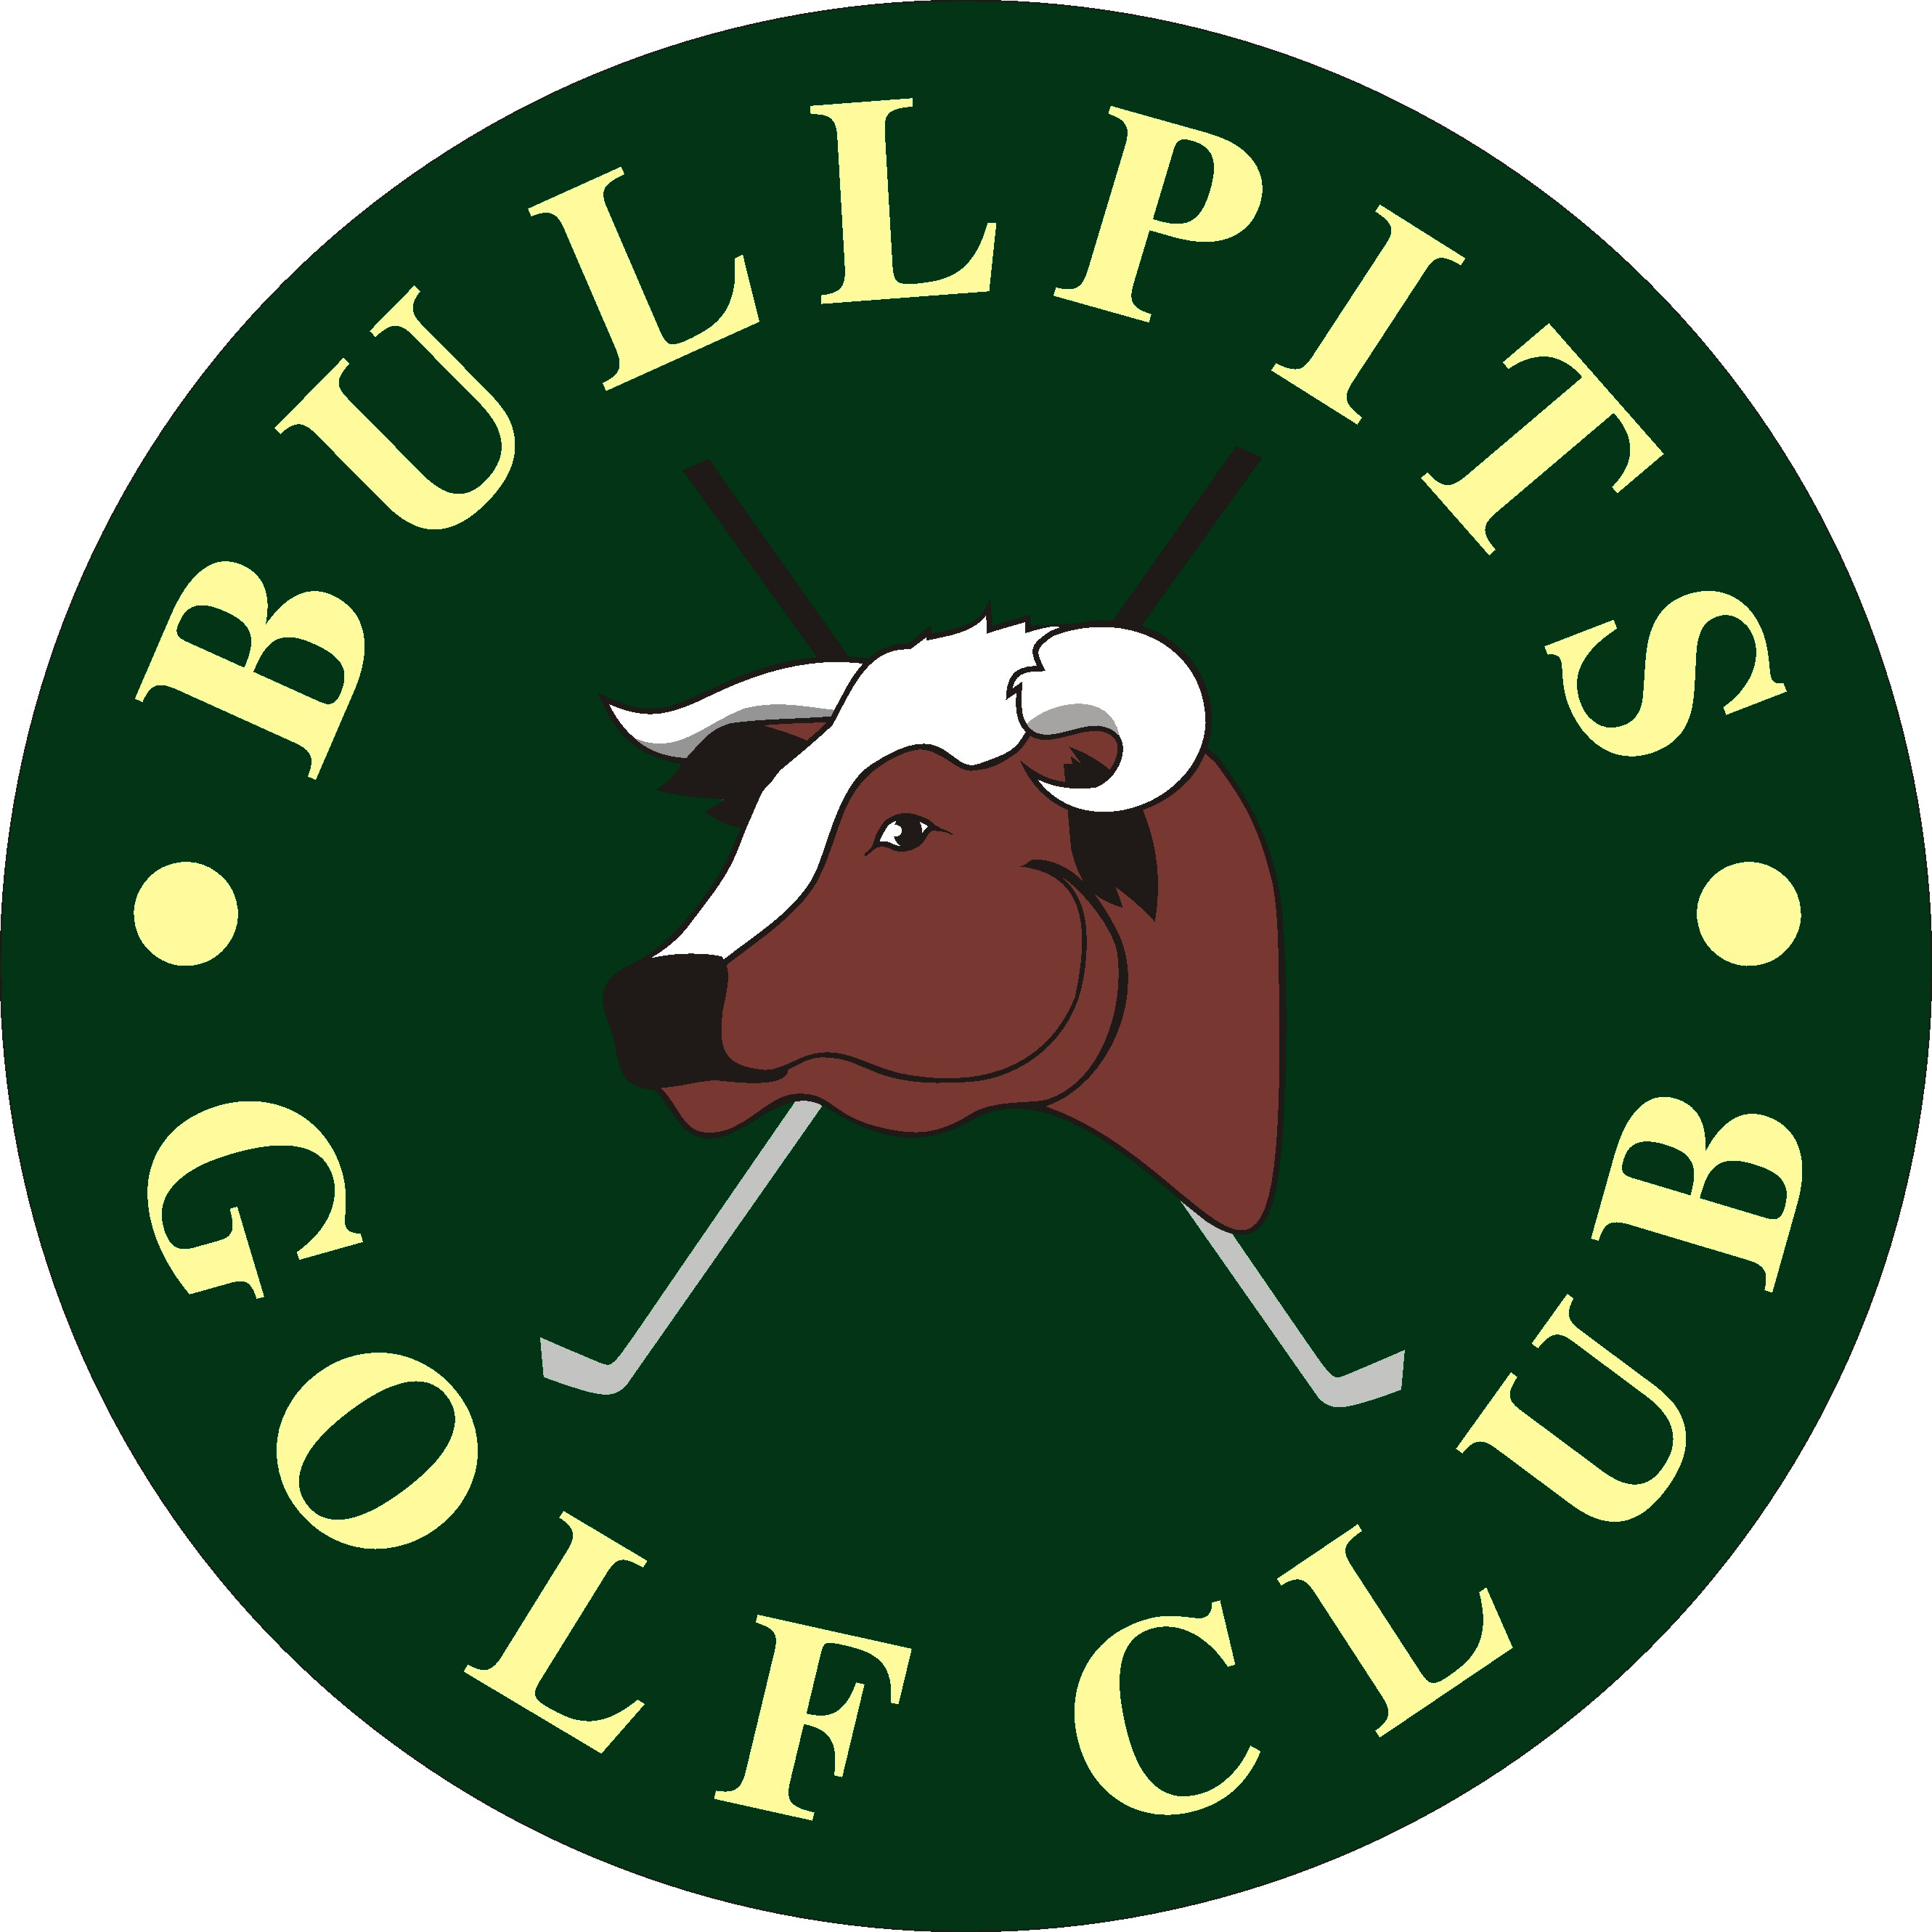 Bullpits Logo - Colour darkgreen